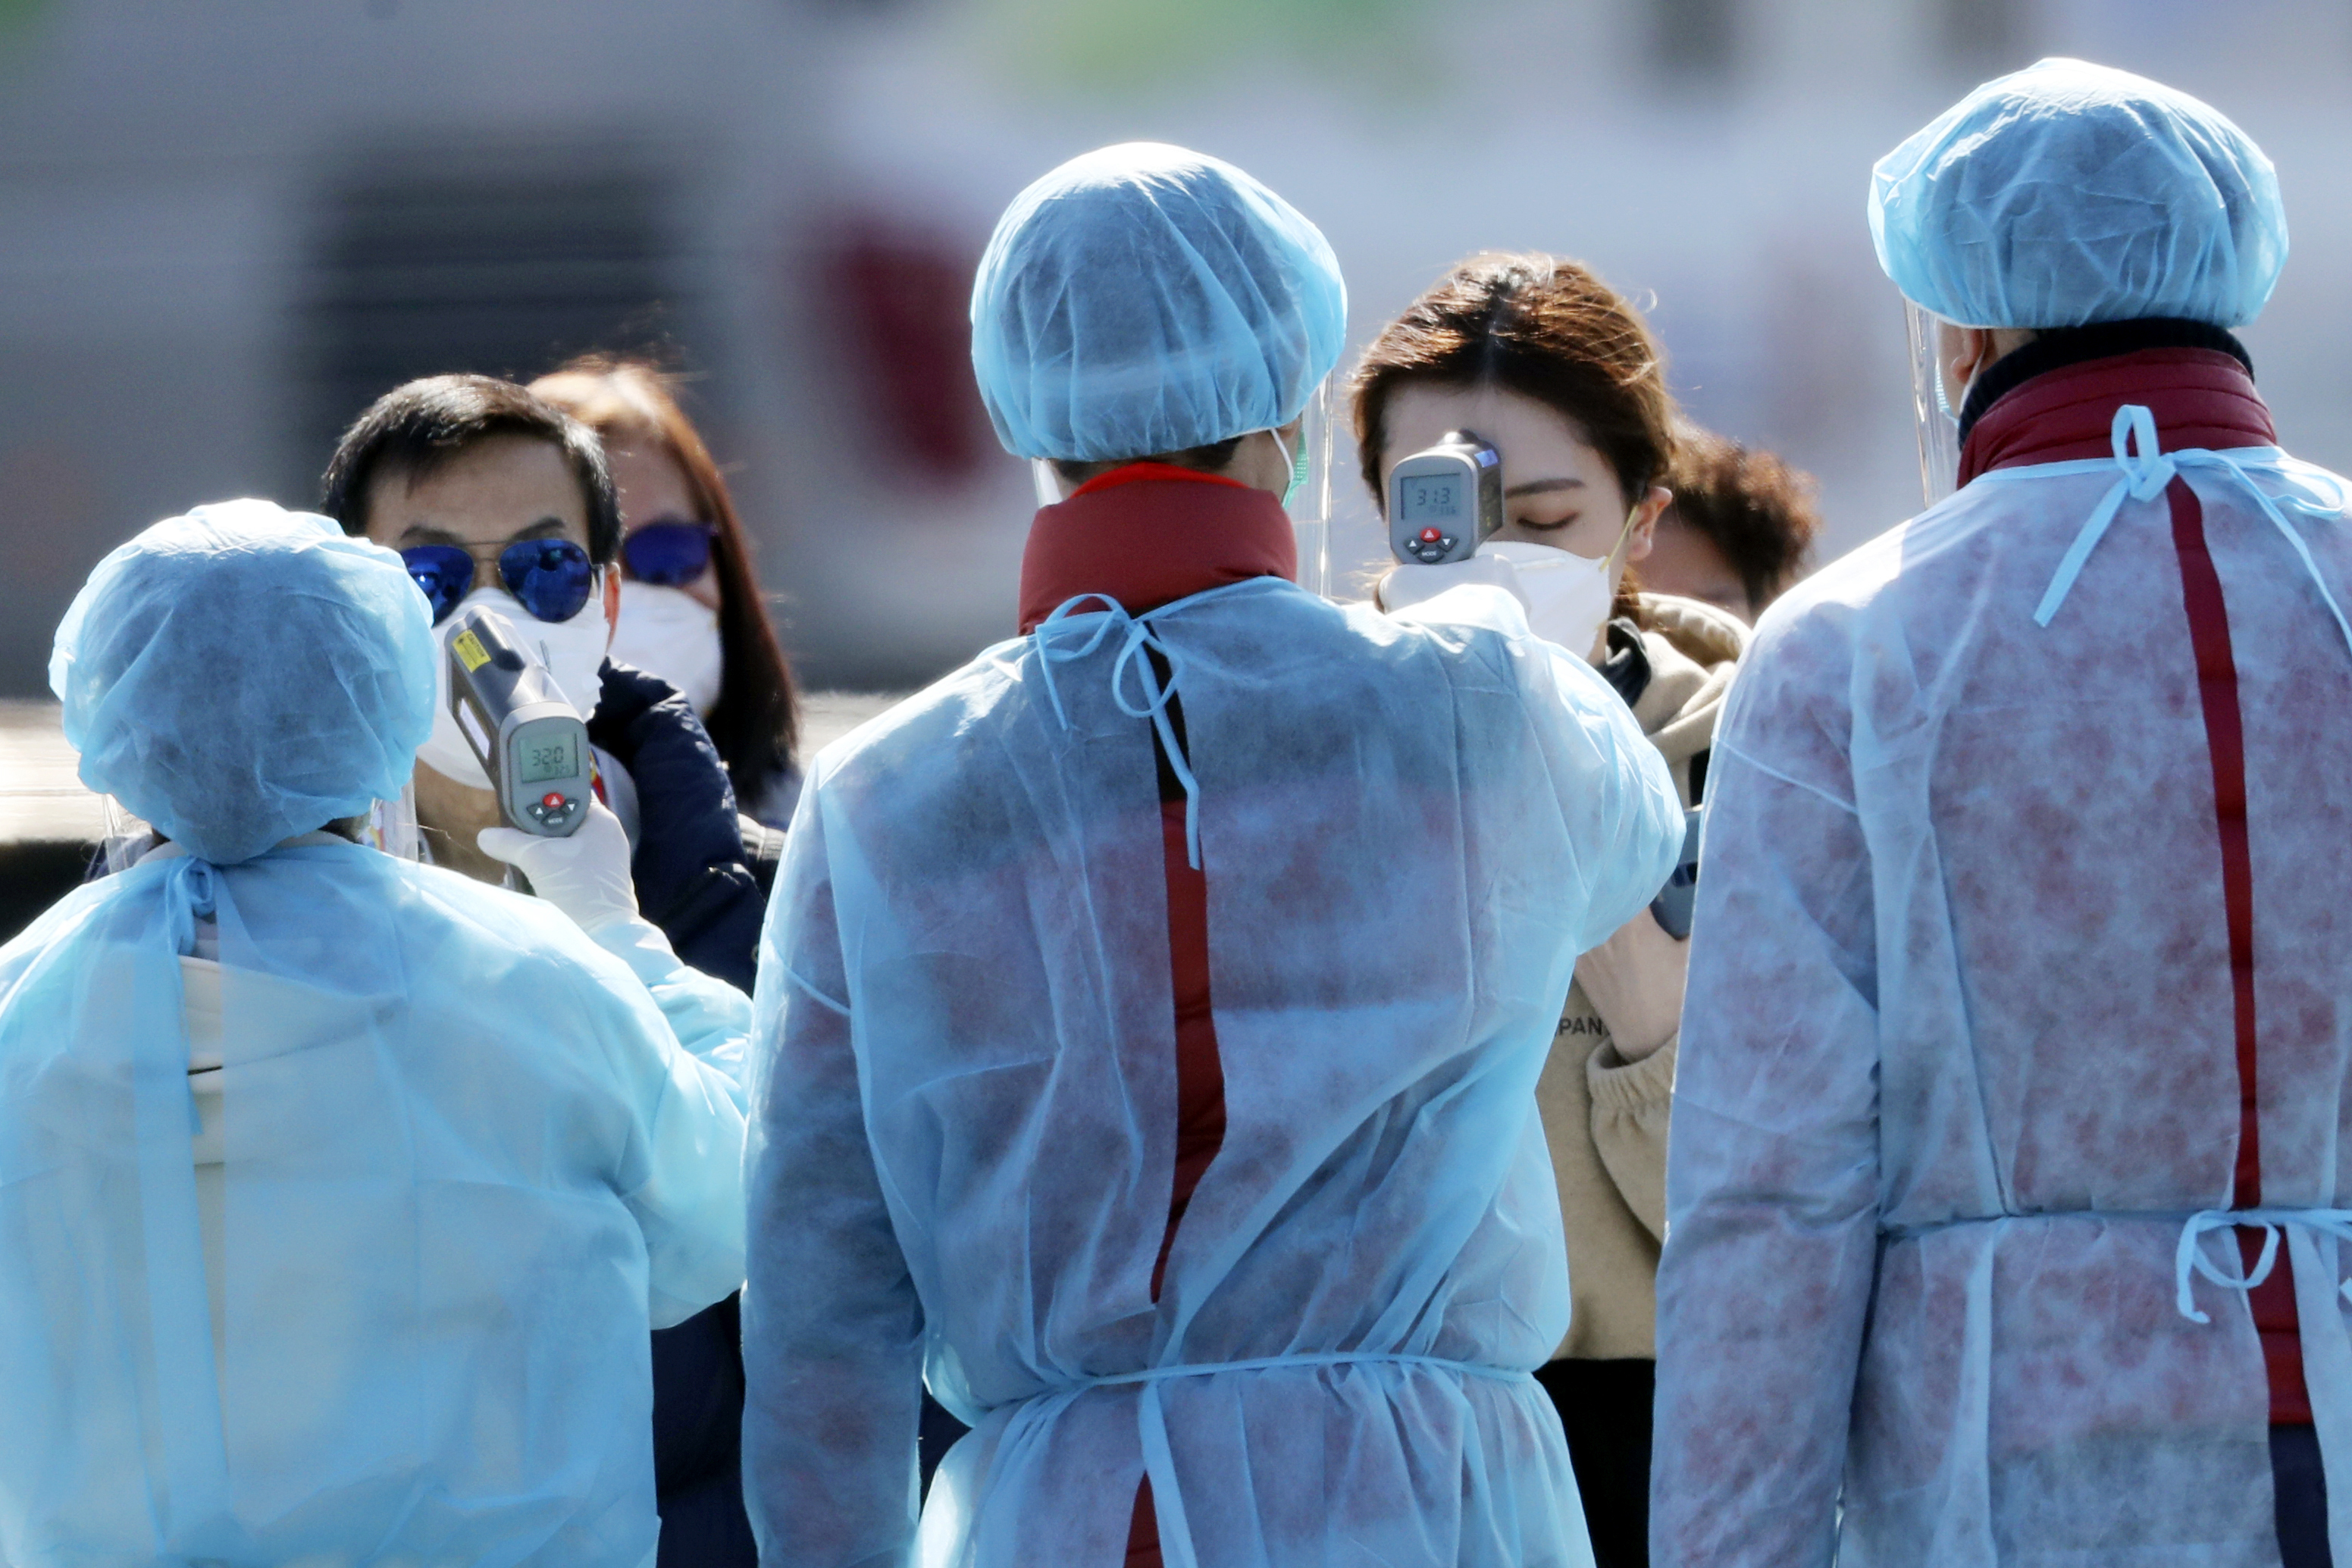 Officials in protective suits check the temperature of Diamond Princess cruise passengers before they board at a port in Yokohama, Japan, on Feb. 21, 2020.